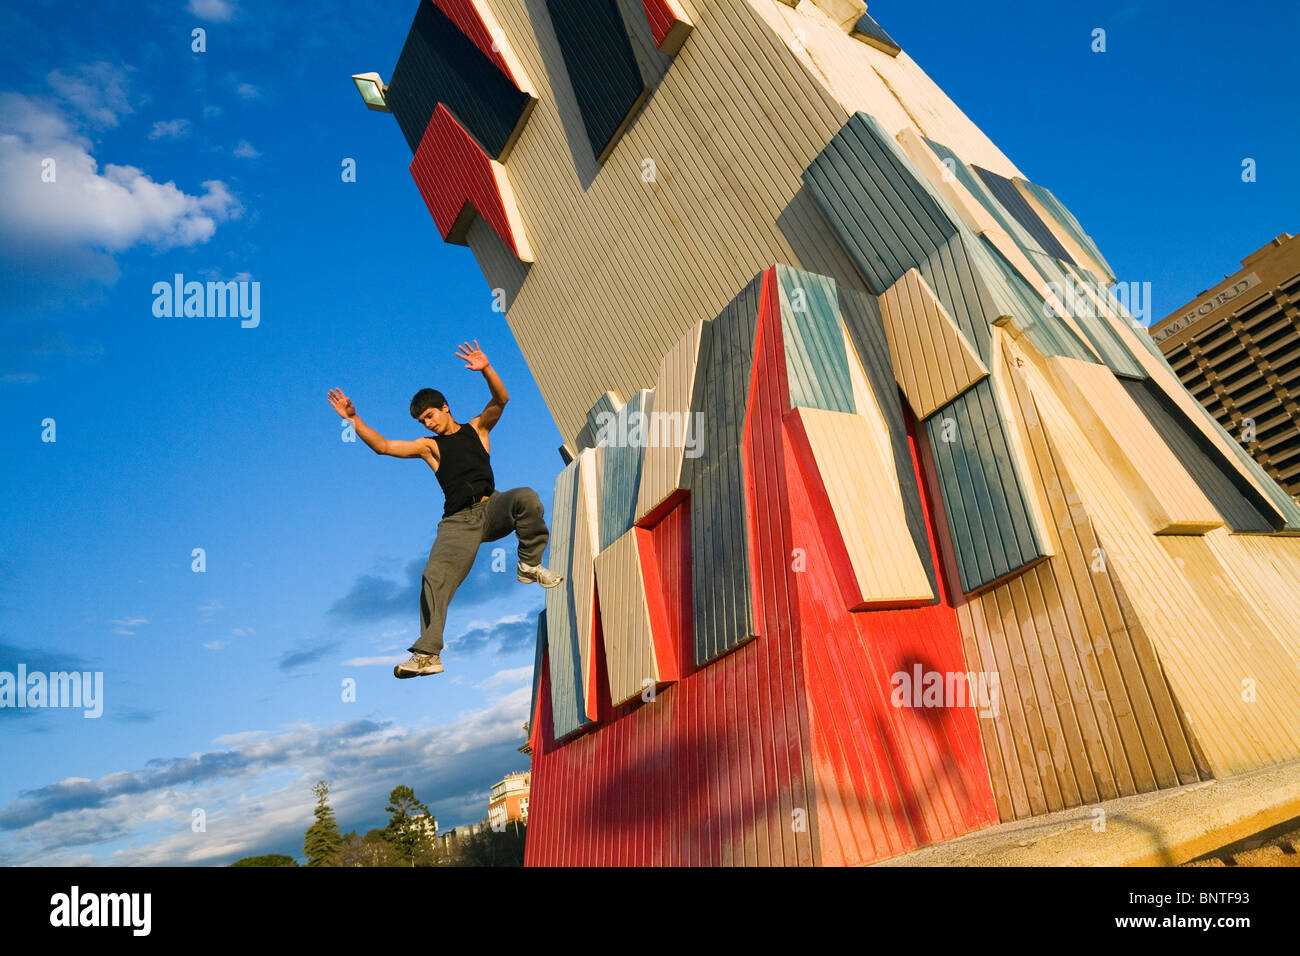 A man practises the urban sport of parkour (free running) in Adelaide, South Australia, AUSTRALIA. - Stock Image